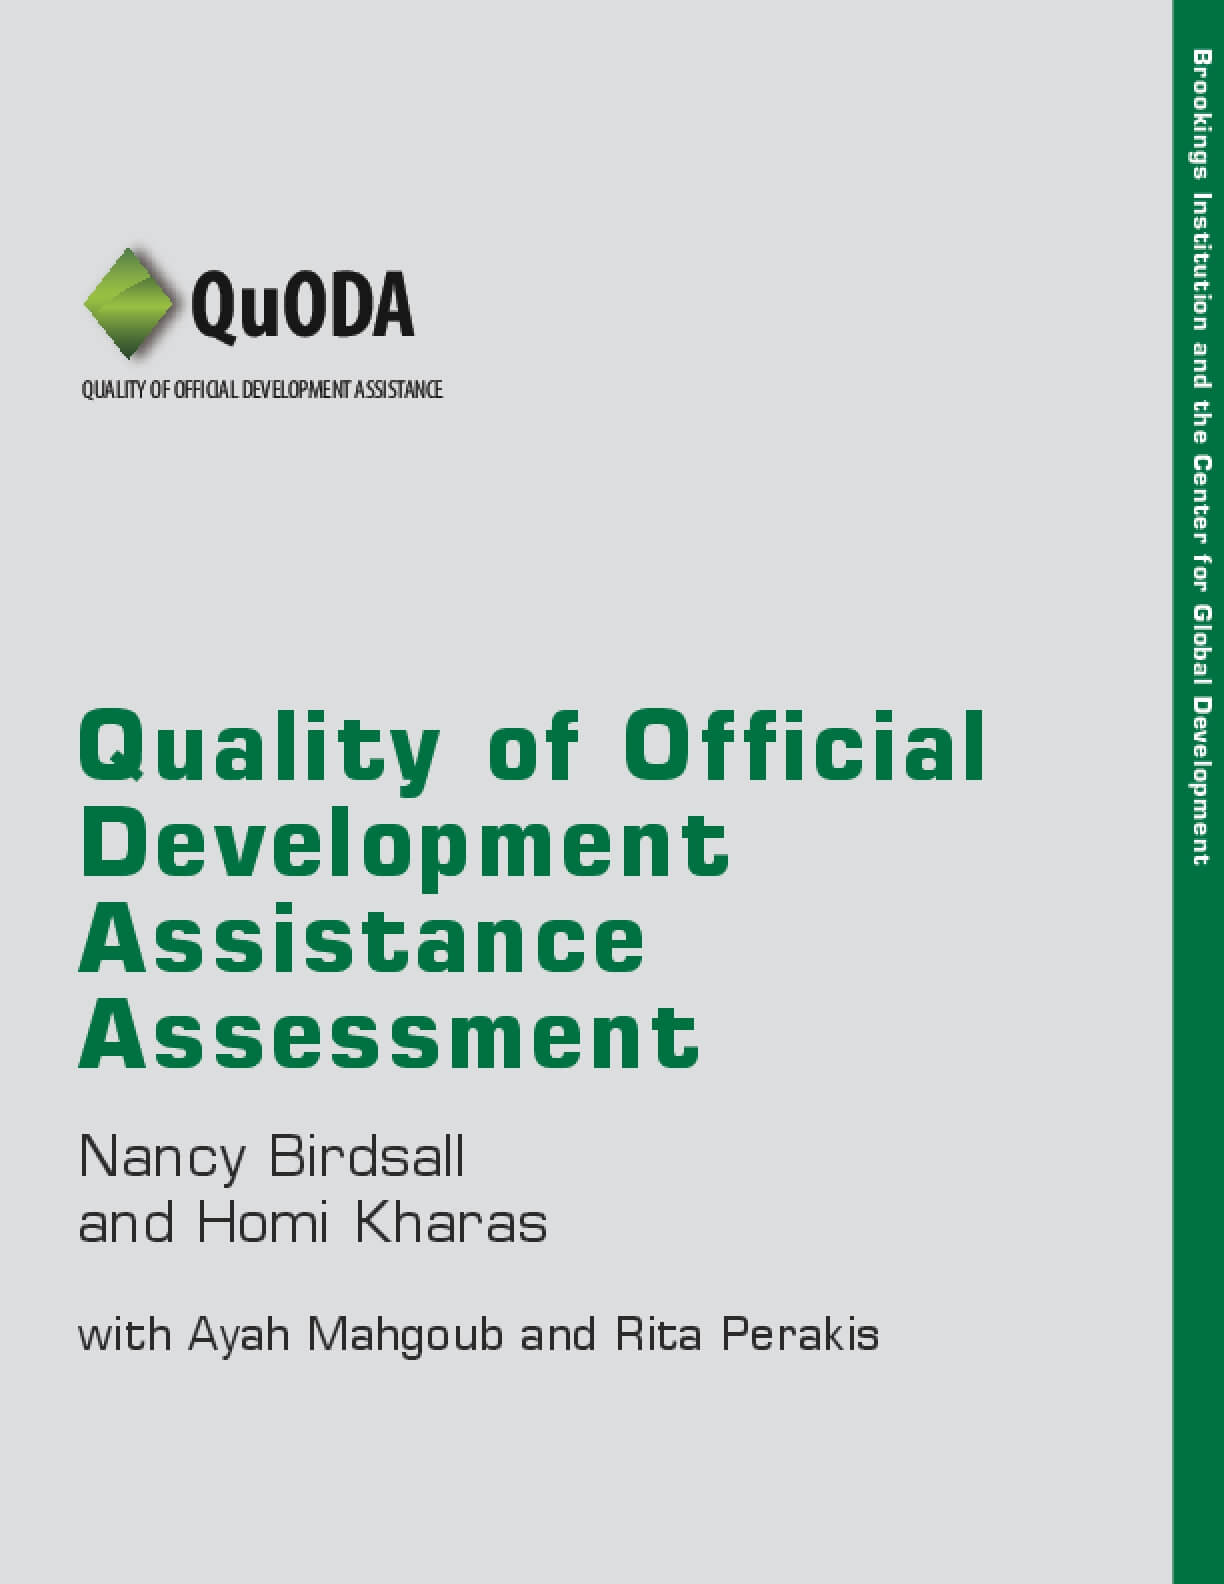 Quality of Official Development Assistance Assessment